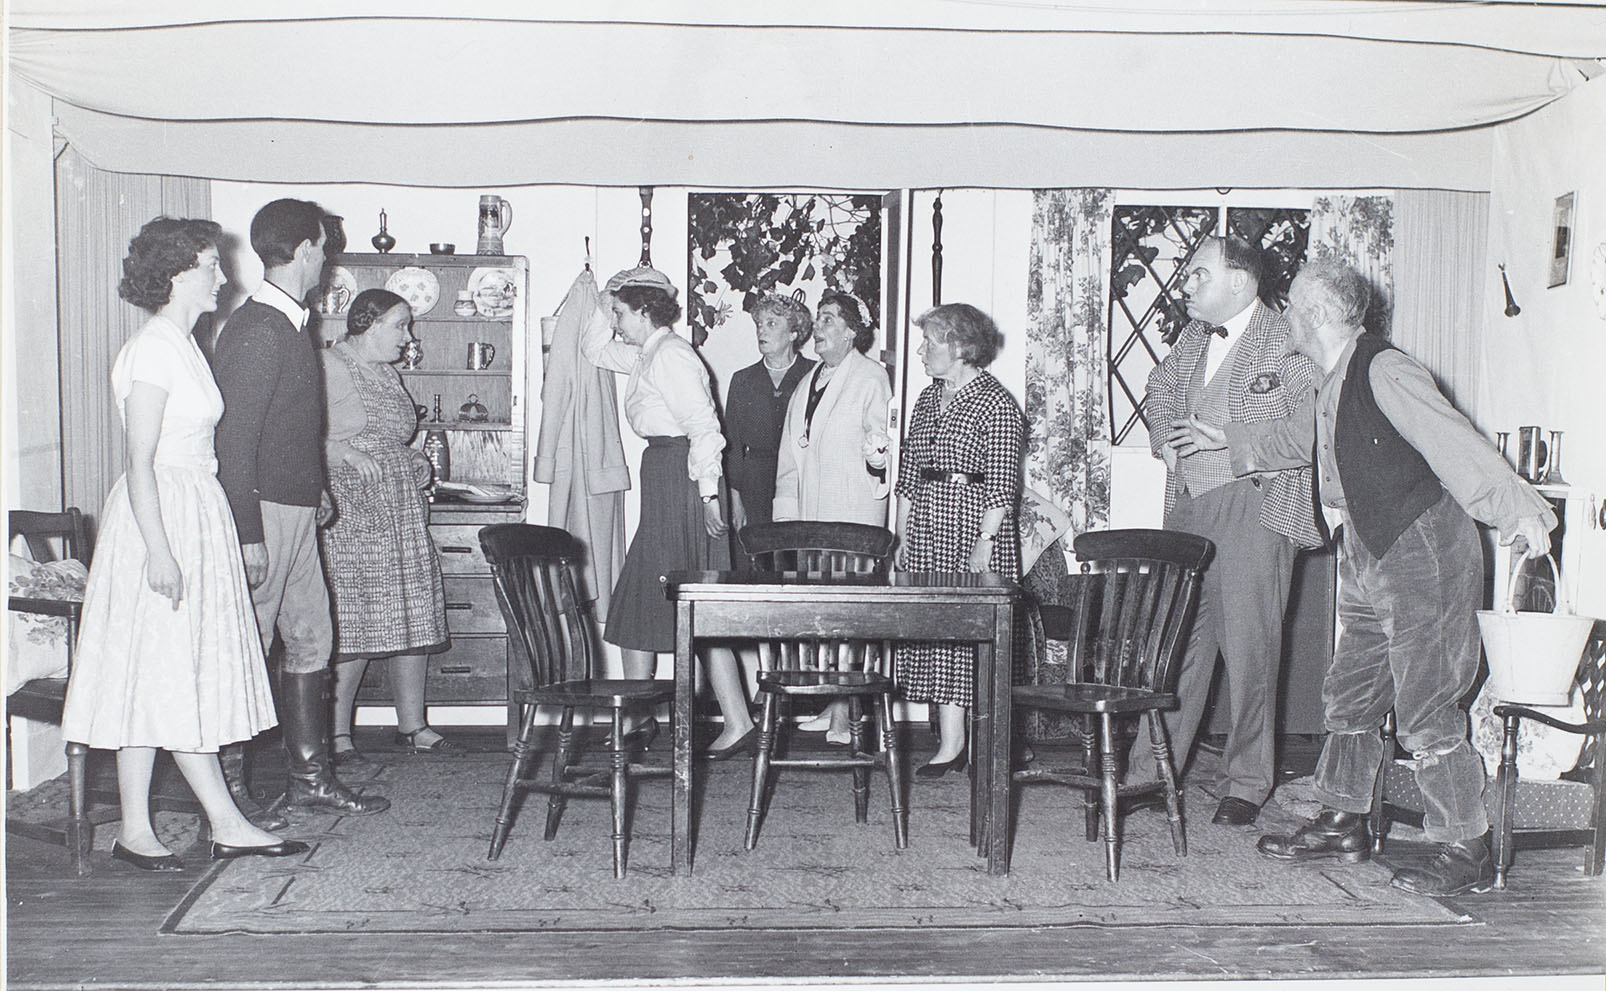 Photograph of the actors in a scene from the 1960s play 'The Camel's Back' performed by the Bishopsteignton Players